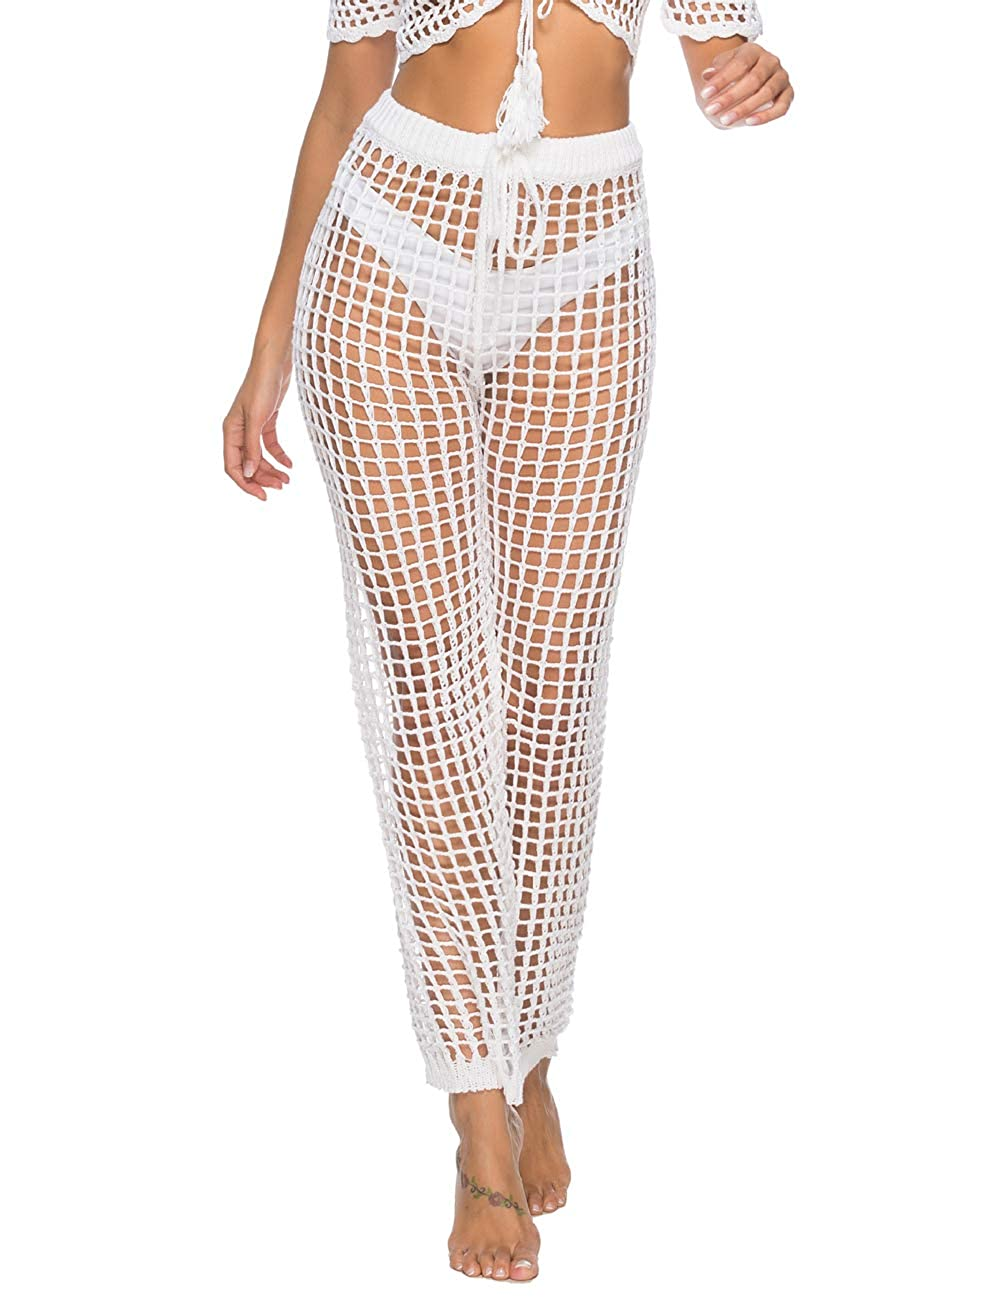 Julier Womens Cover Up Pants Sexy Hollow Out Crochet High Waist Mesh